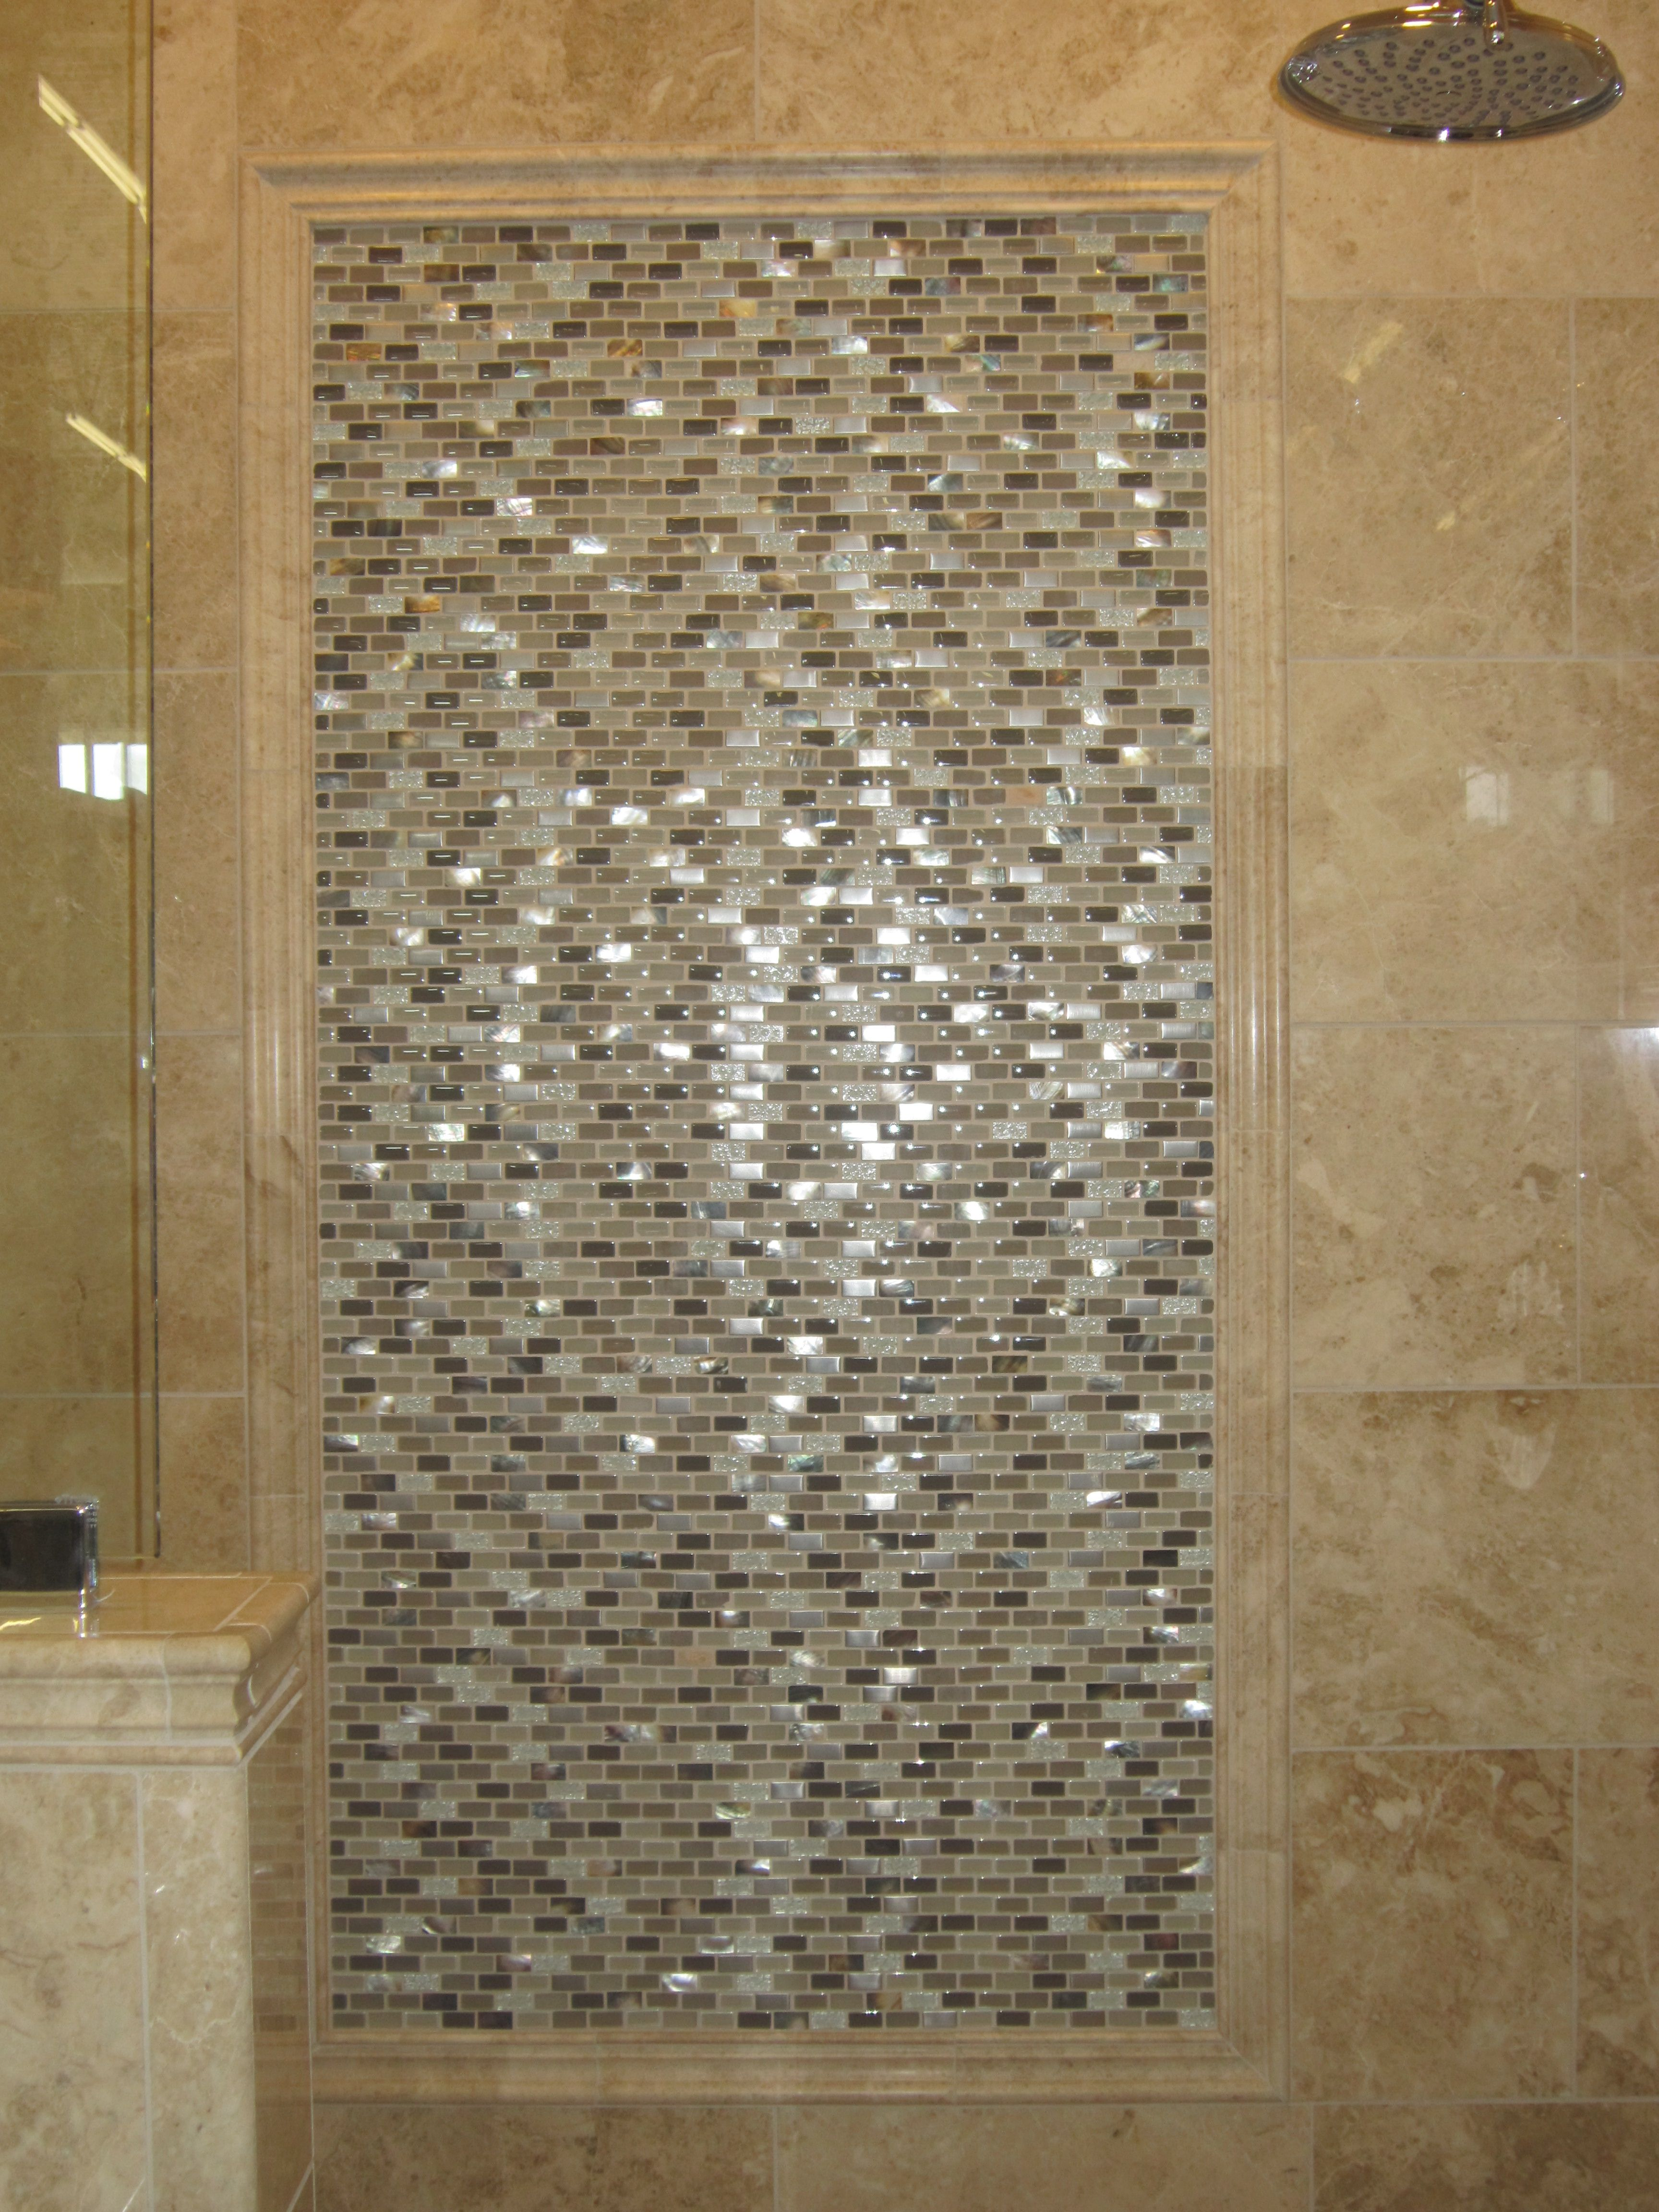 Like A Picture Frame Details For Accent Tile In Shower Versus Having A Whole Wall Done In Accent Det Bathroom Shelf Decor Bathroom Shelves Picture Frame Detail